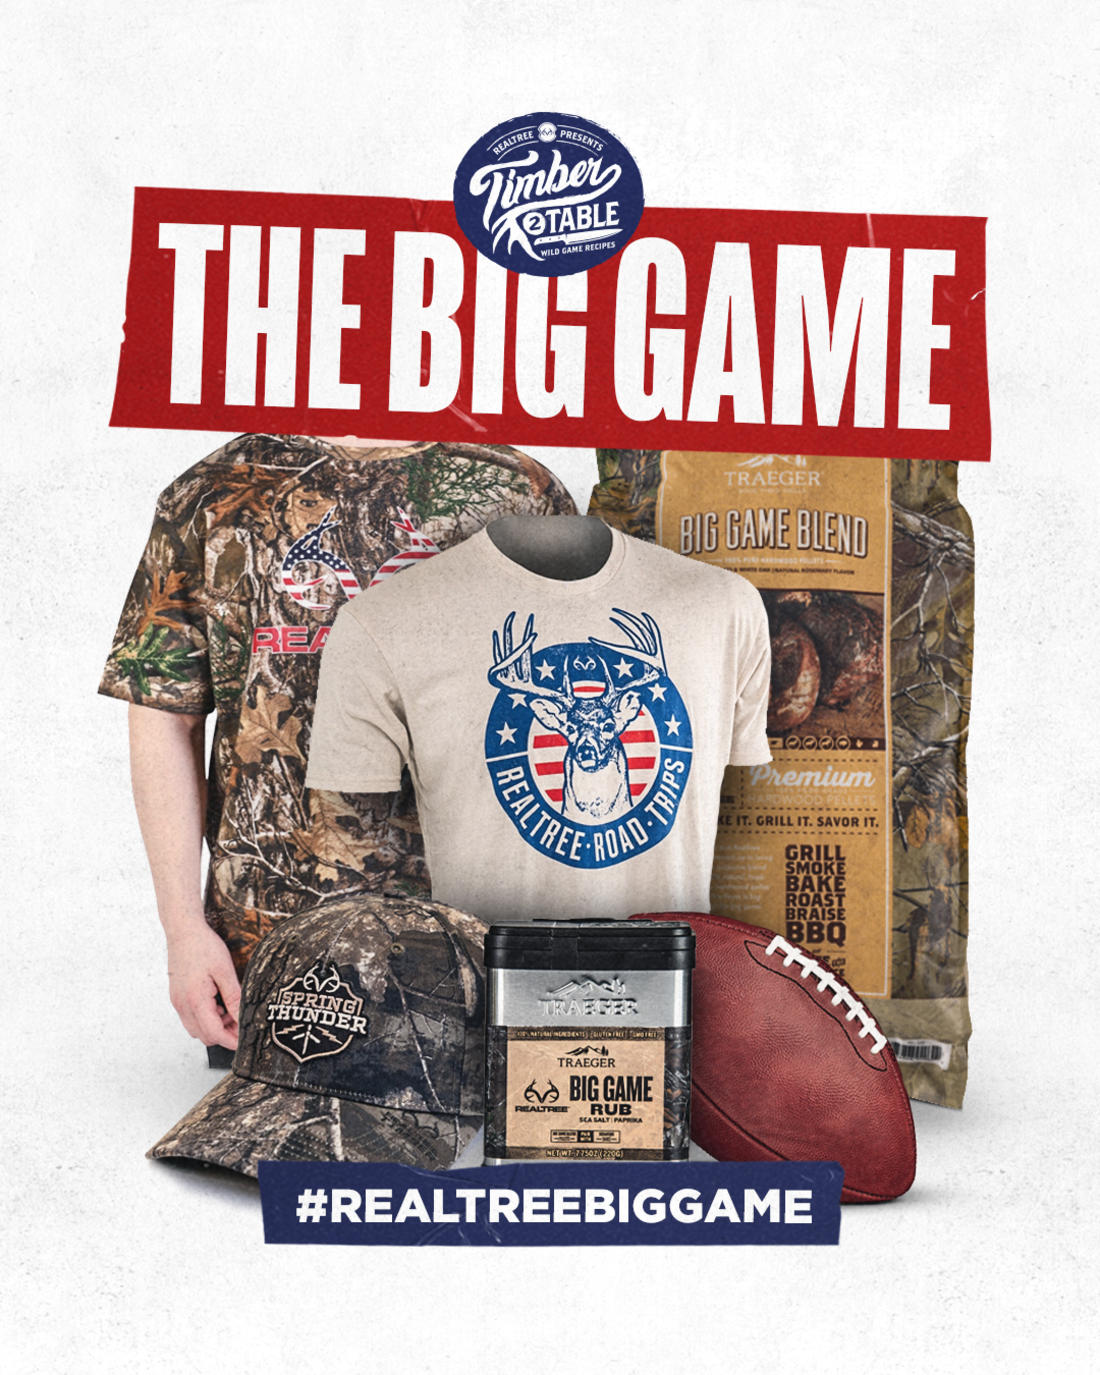 Use #Realtreebiggame when you share your wild game dishes on social media for a chance to win.